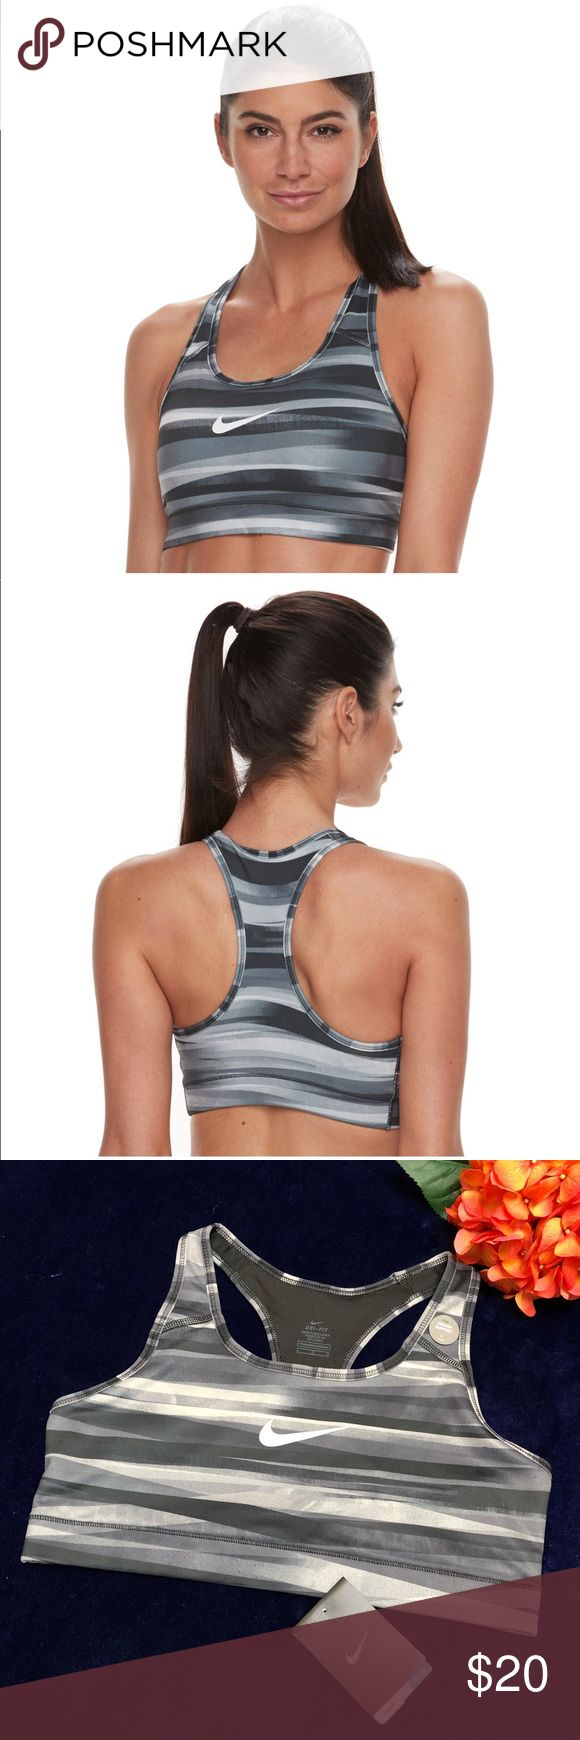 Women's Nike Victory Compression Sports Bra Sz L Women's Nike Bras: Victory Compression Monolith Medium-Impact Sports Bra Sz L.  Perfect for medium-impact exercises such as biking Dri-FIT moisture-wicking technology helps you stay dry & comfortable Brushed chest band delivers a comfortable fit Racerback design allows for a full range of motion Flat seams feel smooth against your skin Stabilized front straps with internal nylon for added support Nike Swoosh logo Compression fit offers…